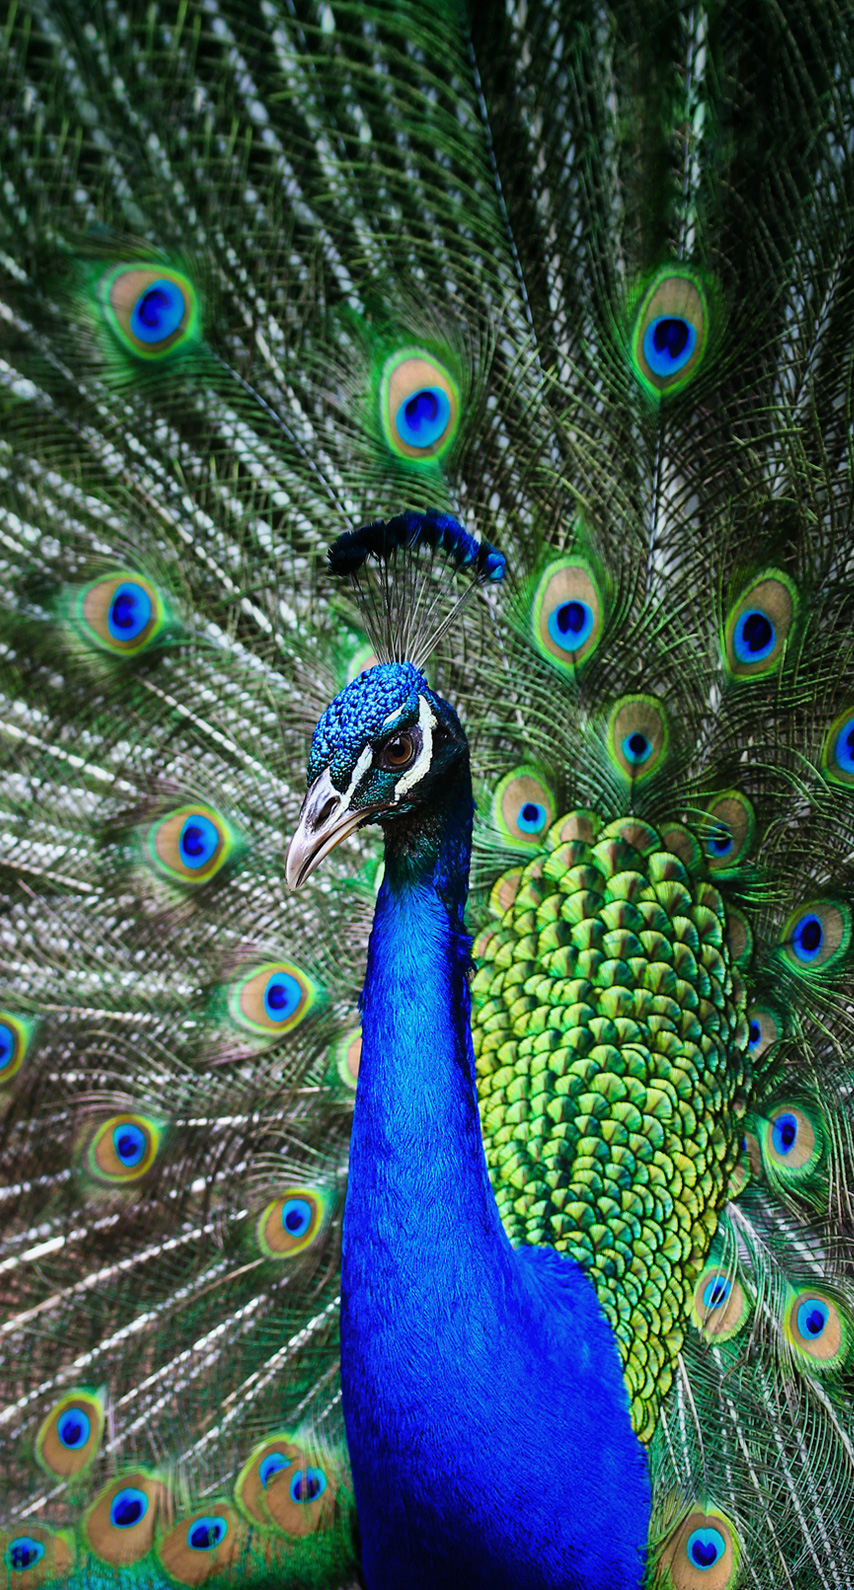 peacock, peafowl